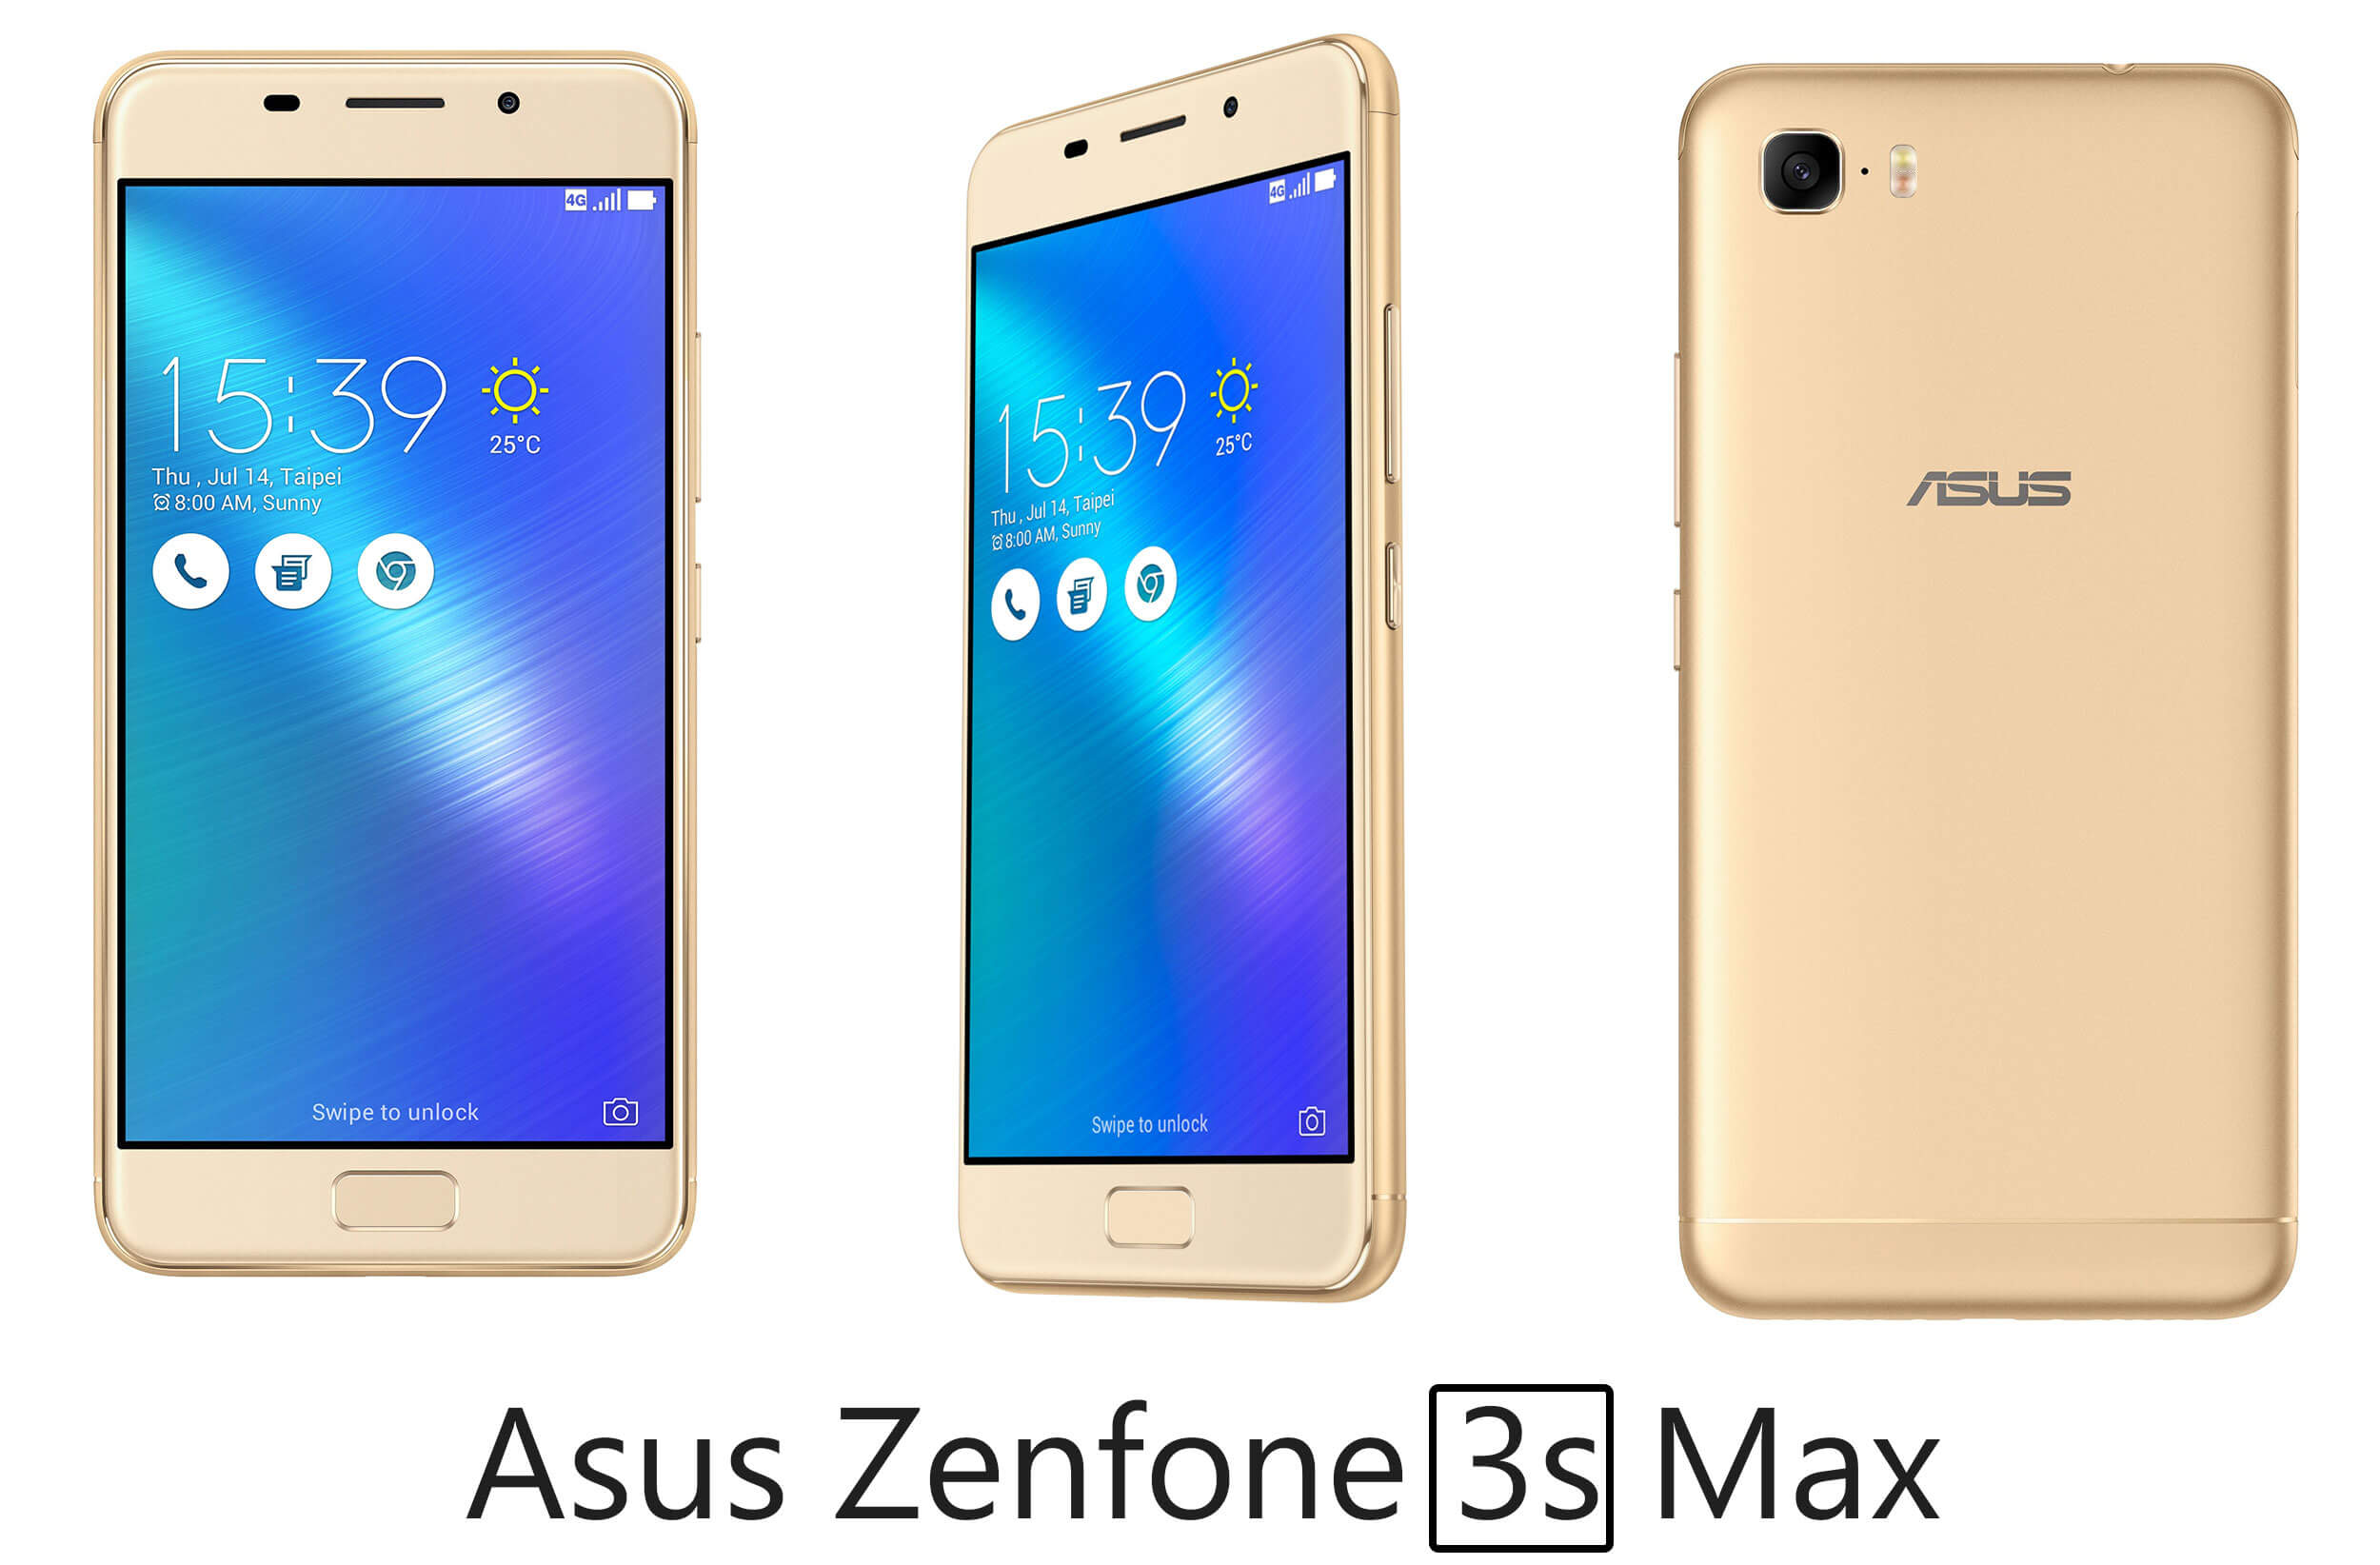 Asus Zenfone 3S Max Design and Display